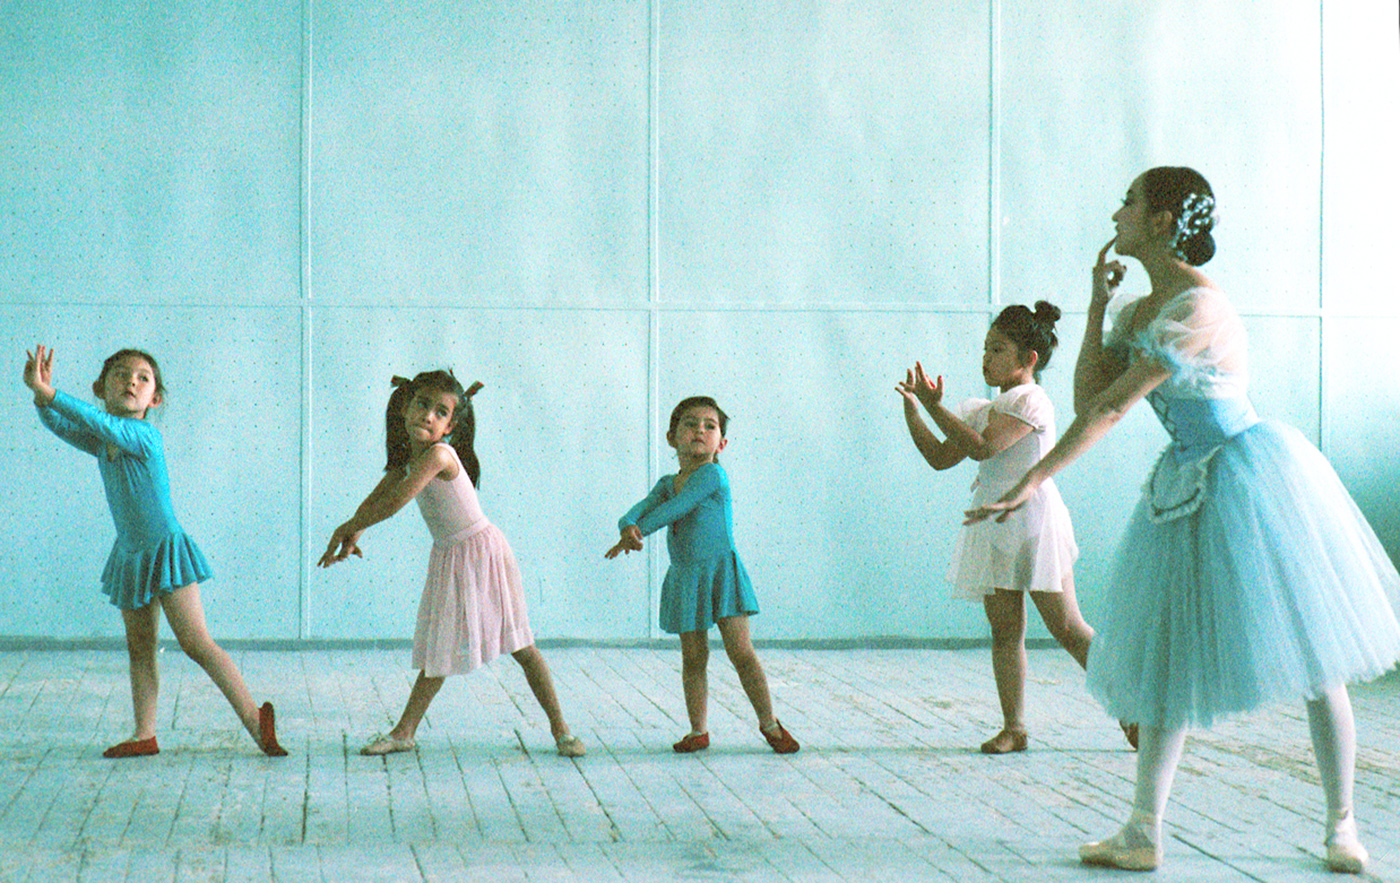 Ballet class in Outer Mongolia